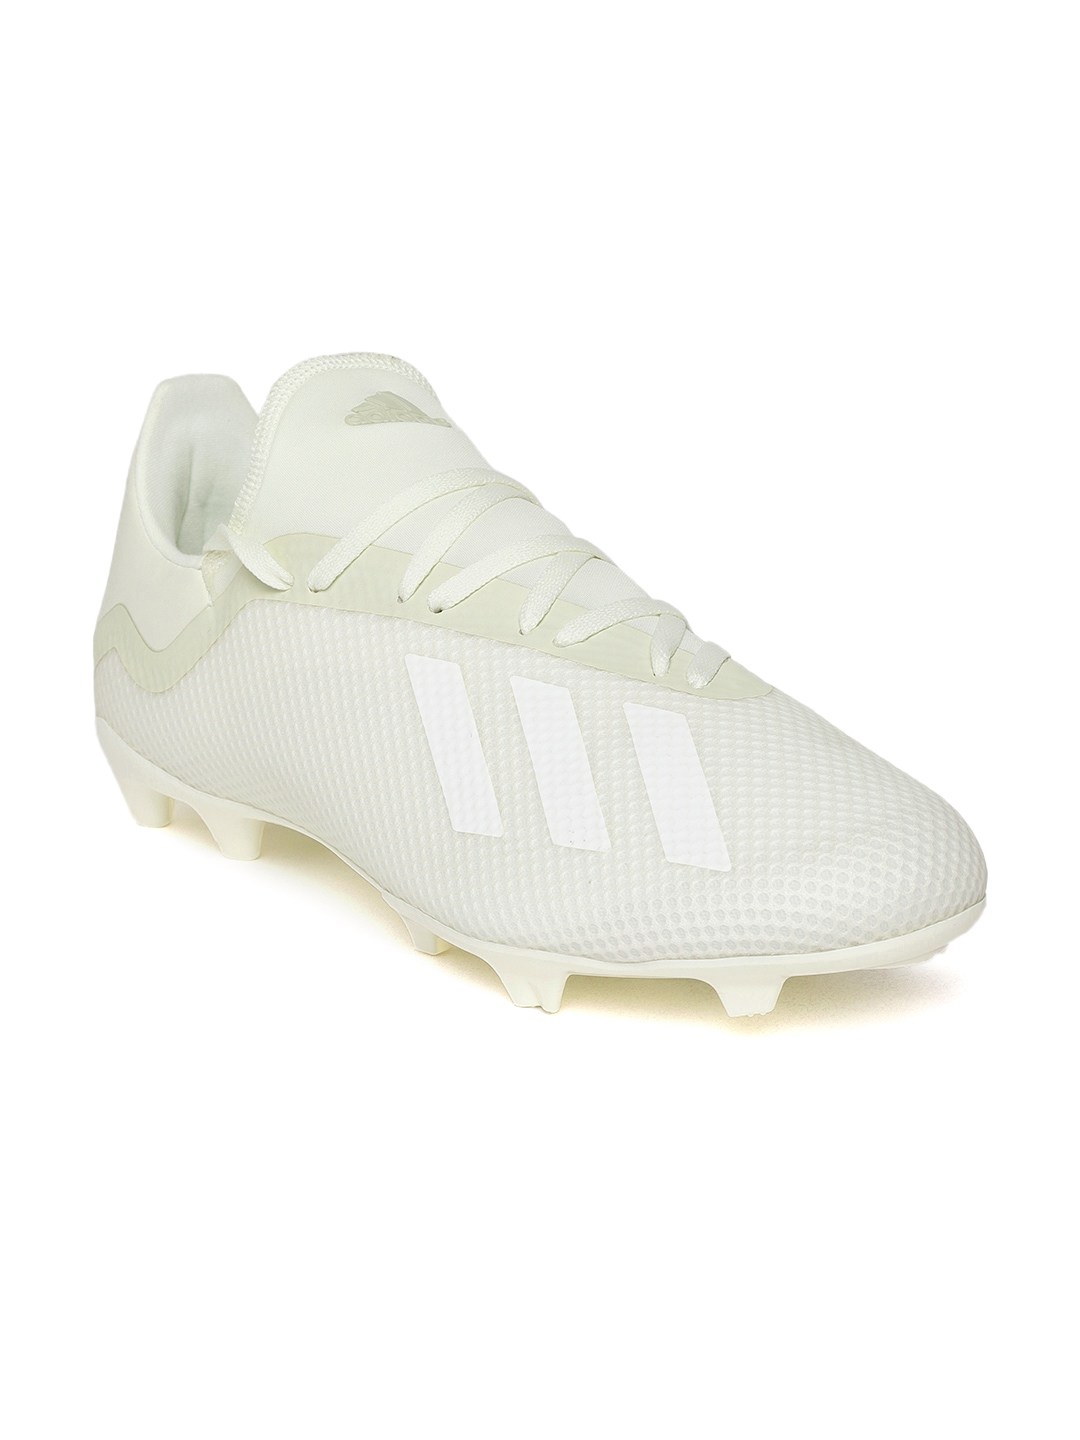 eeb7a01511c0 Buy ADIDAS Men Off White Football Shoes - Sports Shoes for Men ...